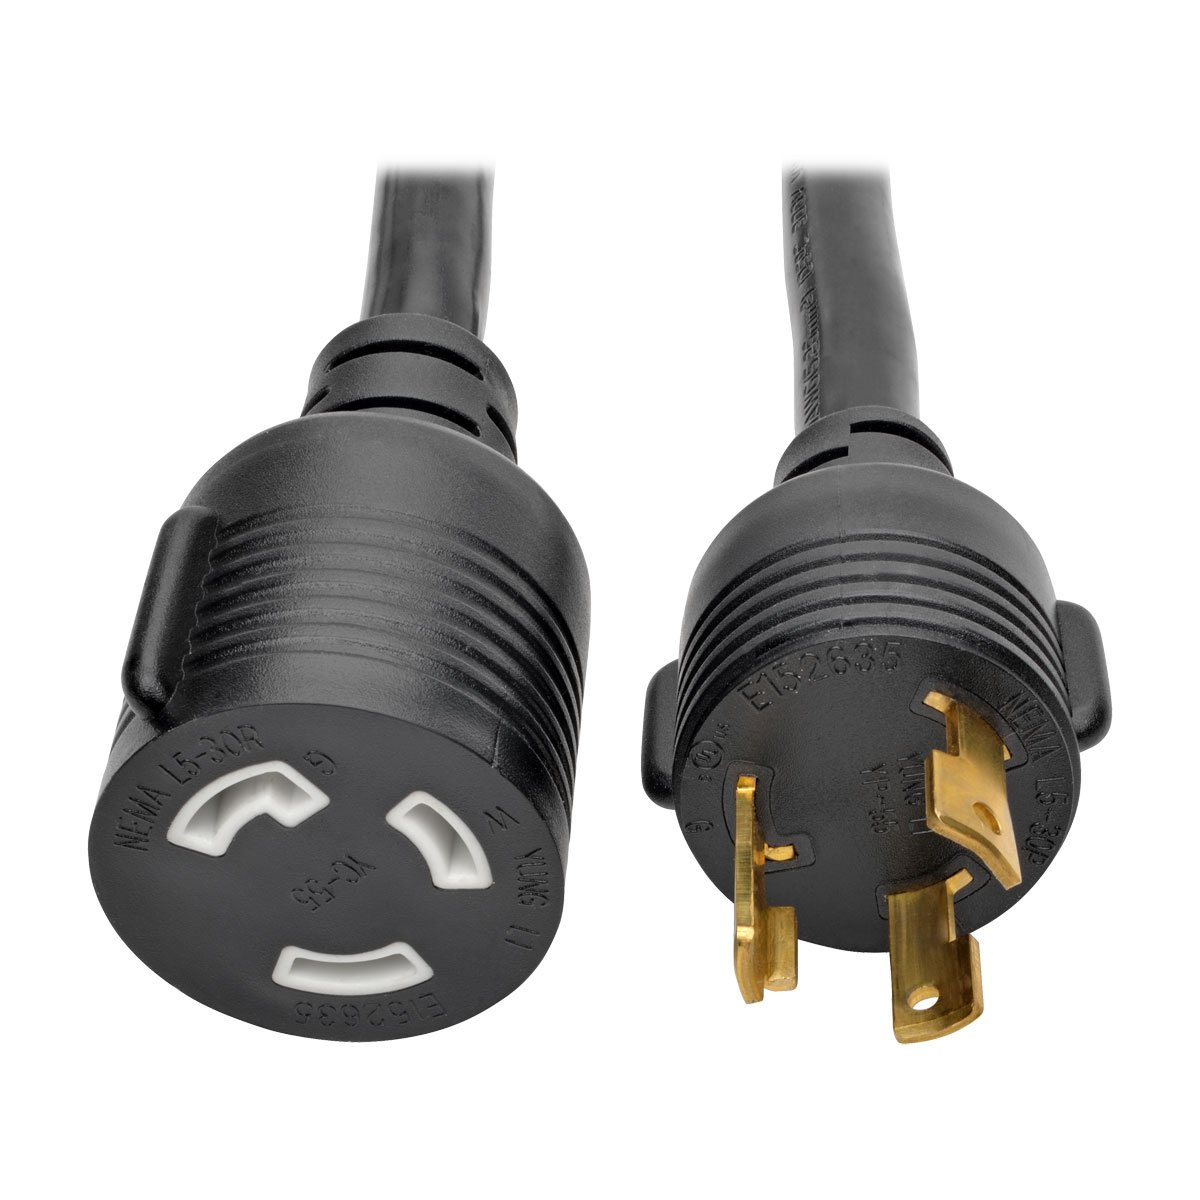 TRIPP LITE Heavy Duty Power Extension Cord 30A 10 AWG L5-30P to L5-30R Locking Connectors 10', Black (P046-010-LL-30A)